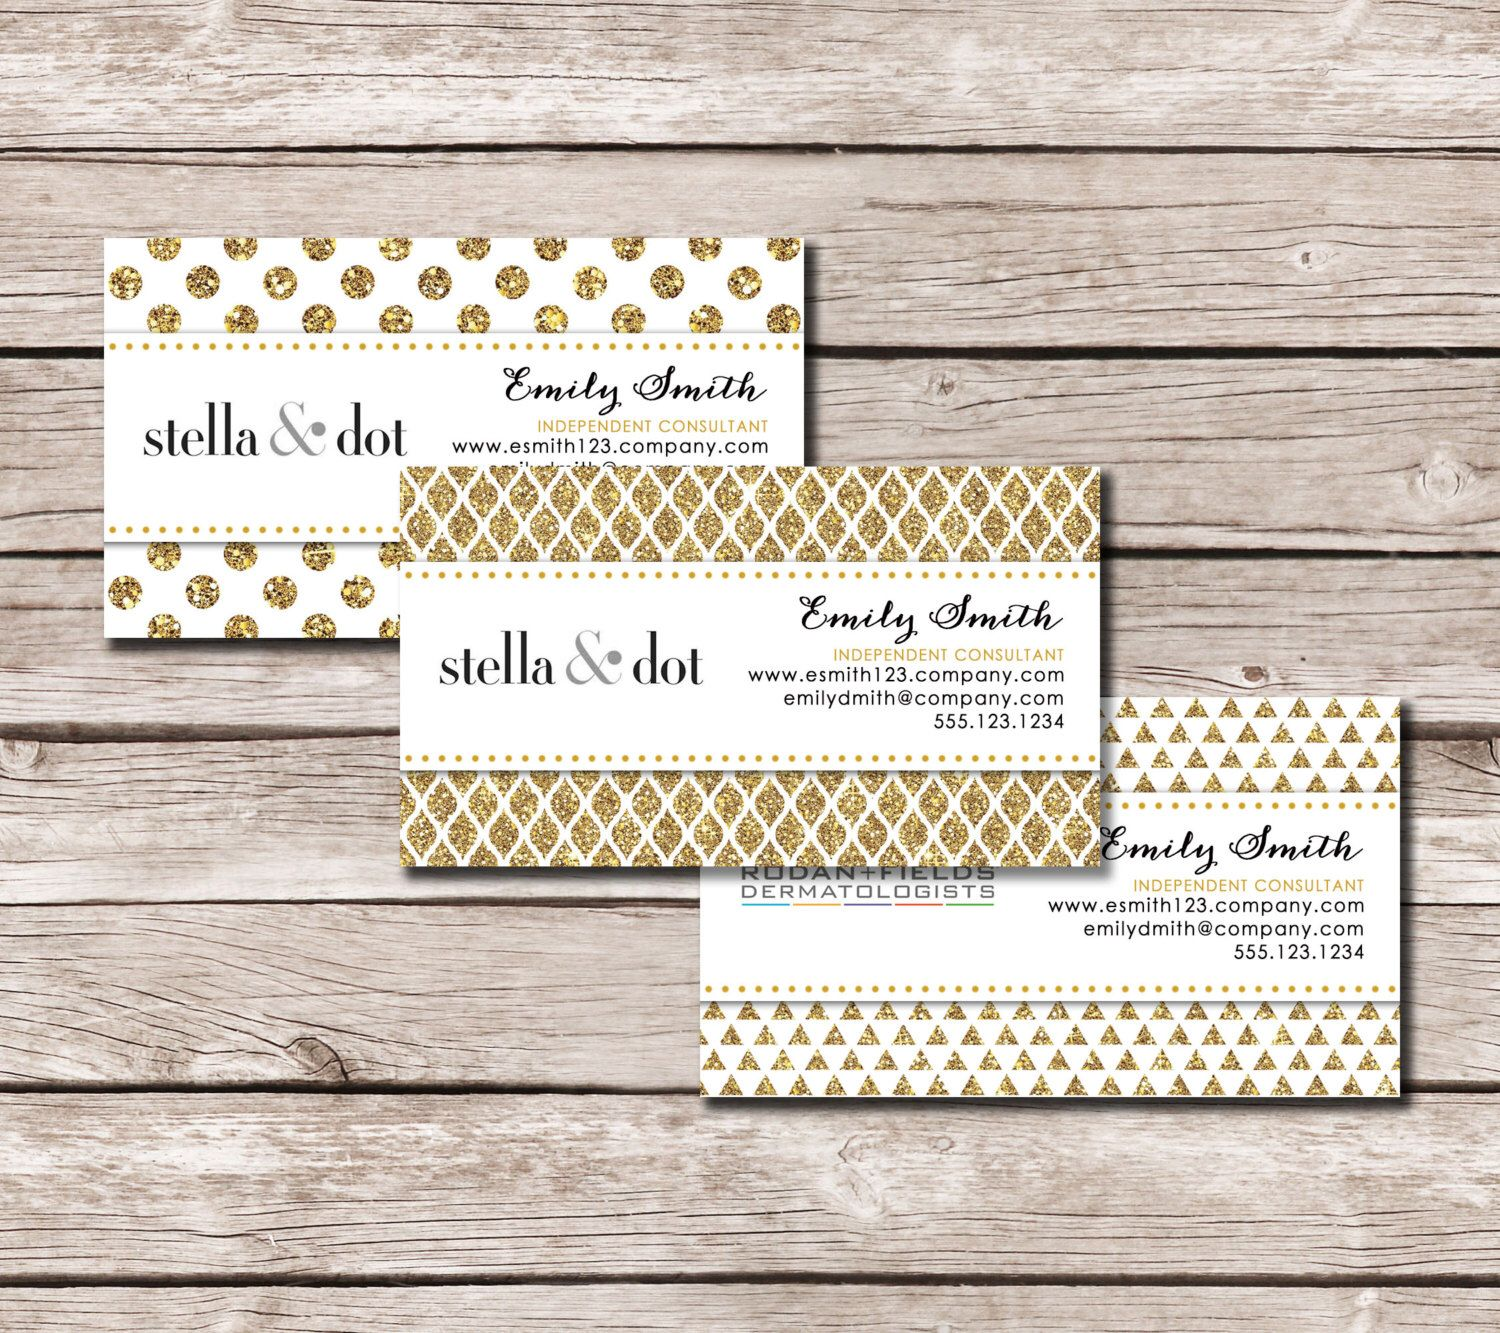 So excited about my new listing 6 glitter gold patterned business 6 glitter gold patterned business cards for rodan and fields stella and dot mary kay and thirty one any business logo colourmoves